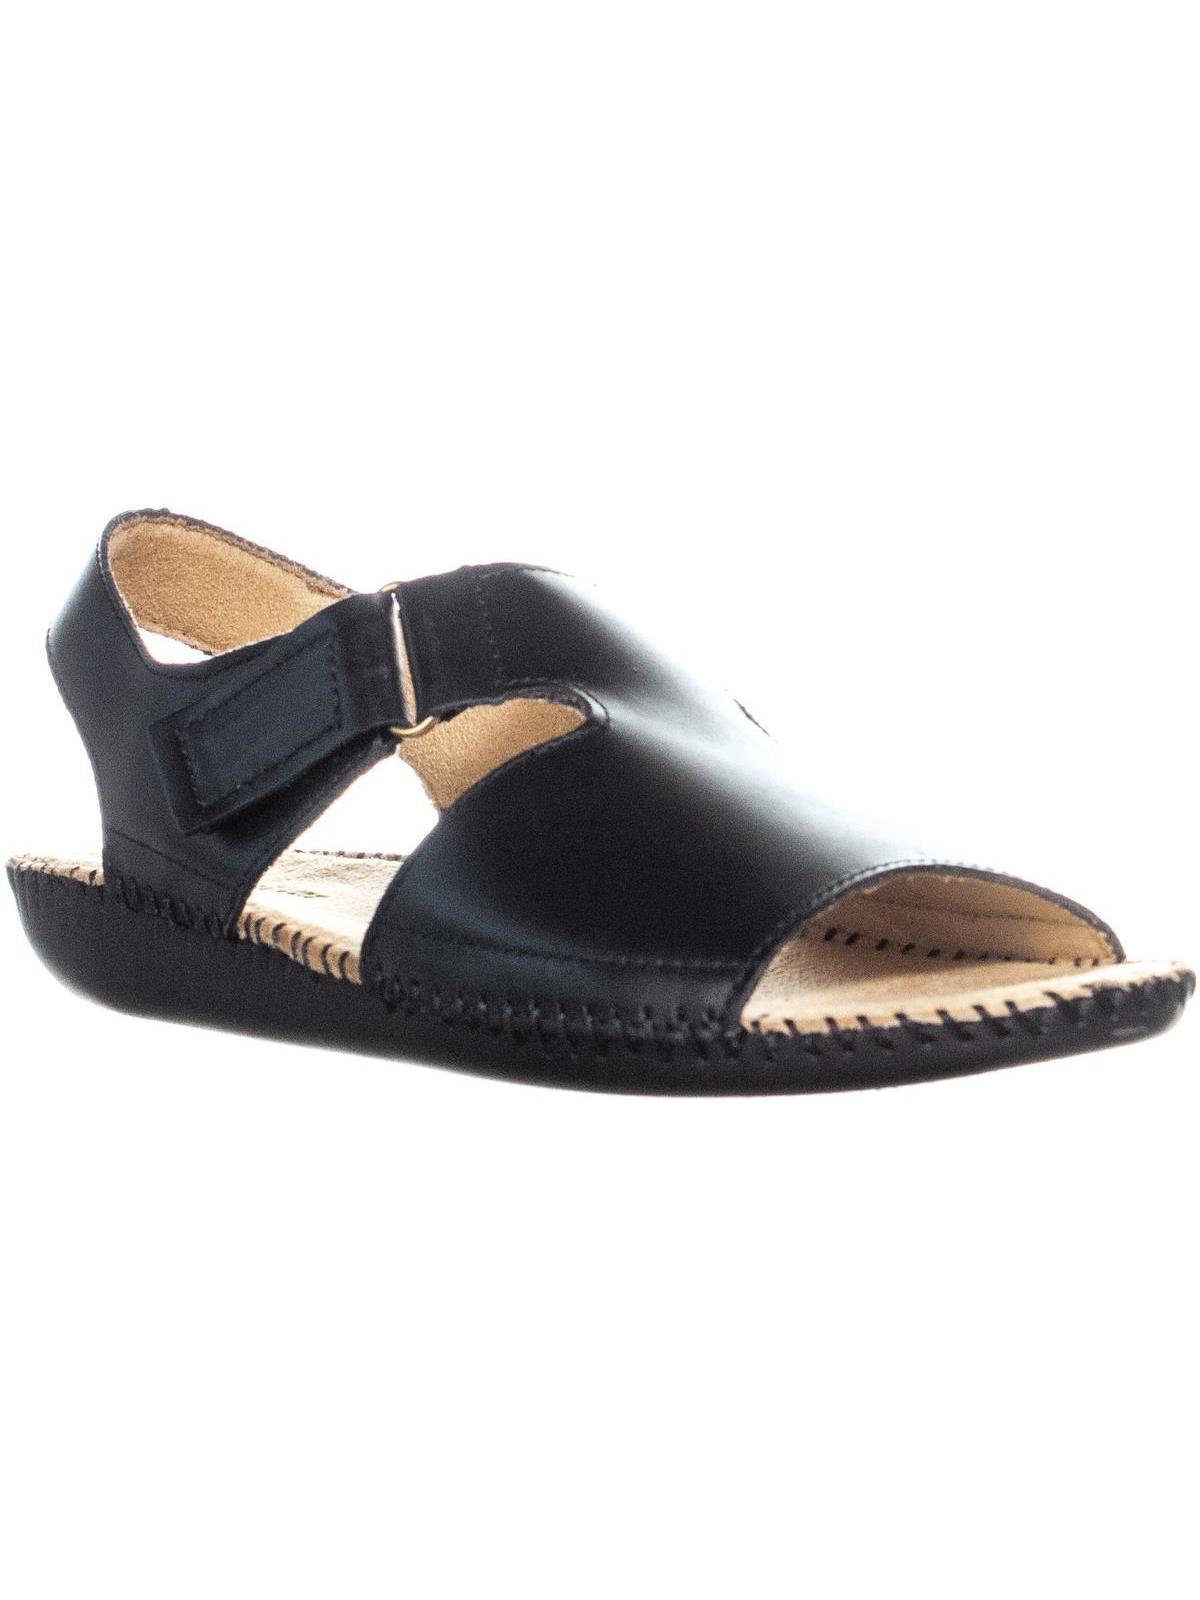 Womens Naturalizer Scout Wedge Heel Sandals, Black Leather by Naturalizer